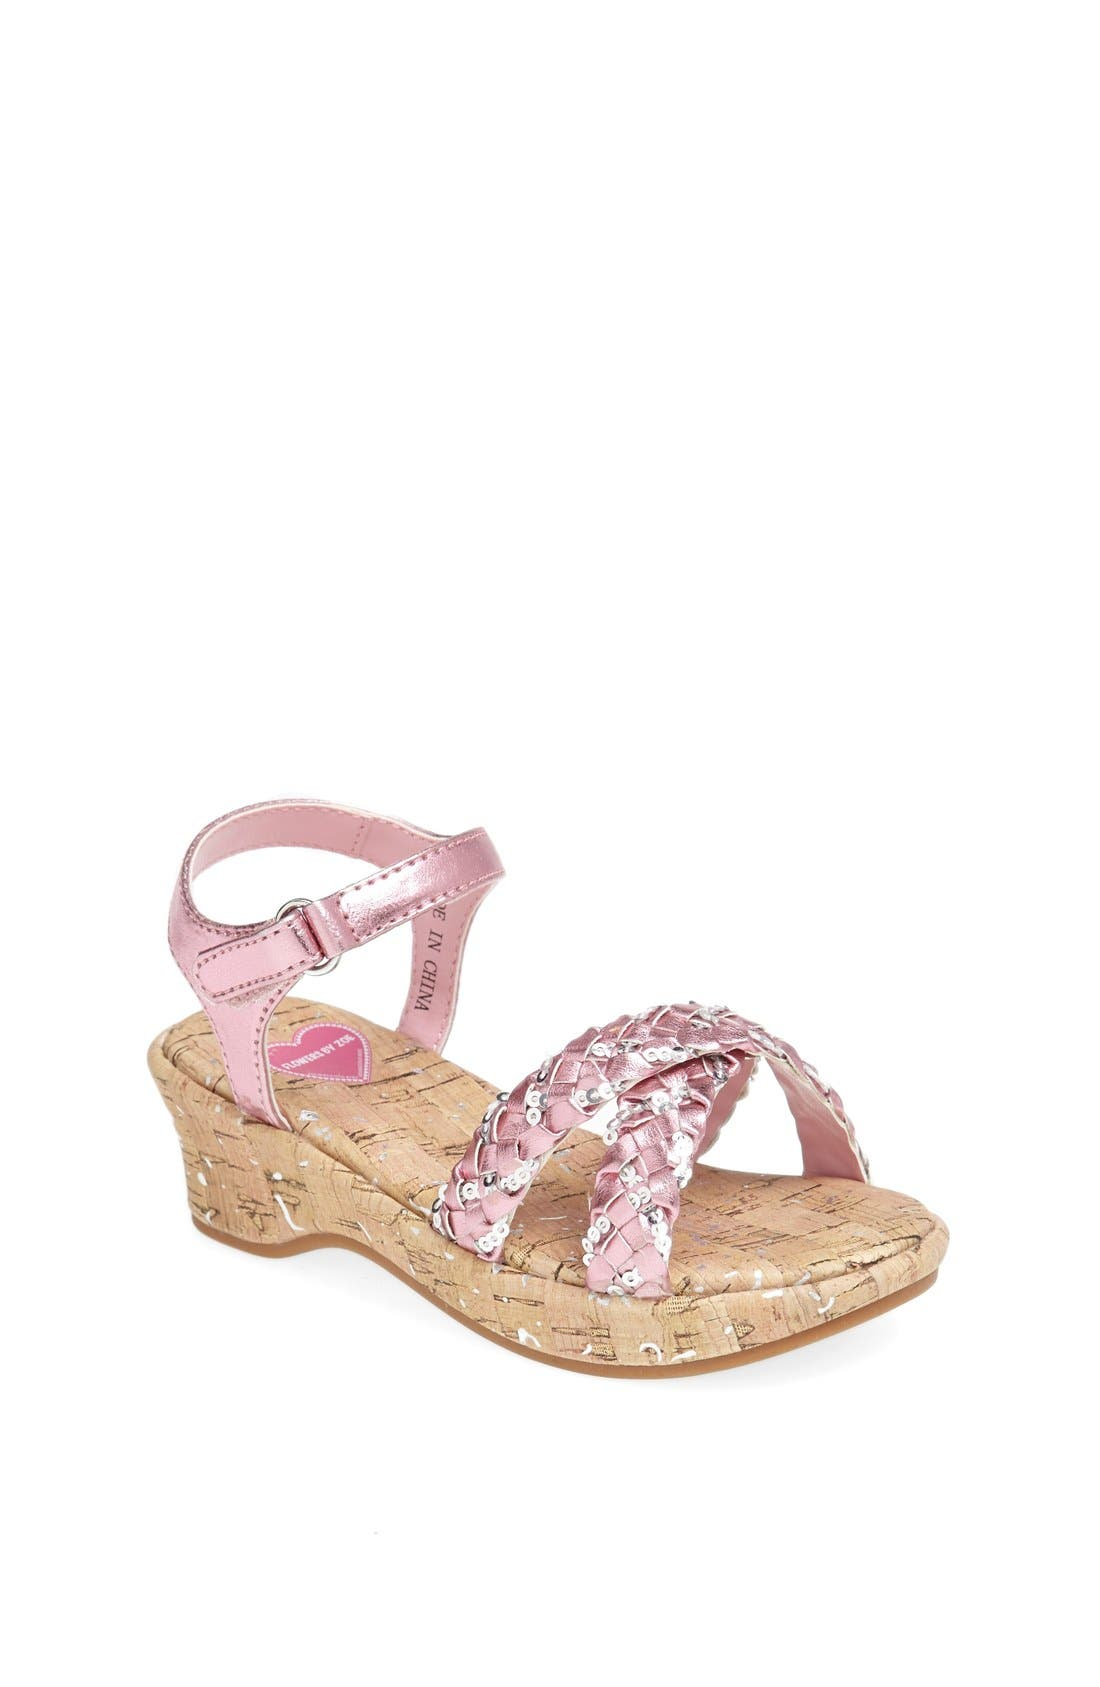 Alternate Image 1 Selected - Flowers by Zoe 'Brenda' Wedge Sandal (Toddler)